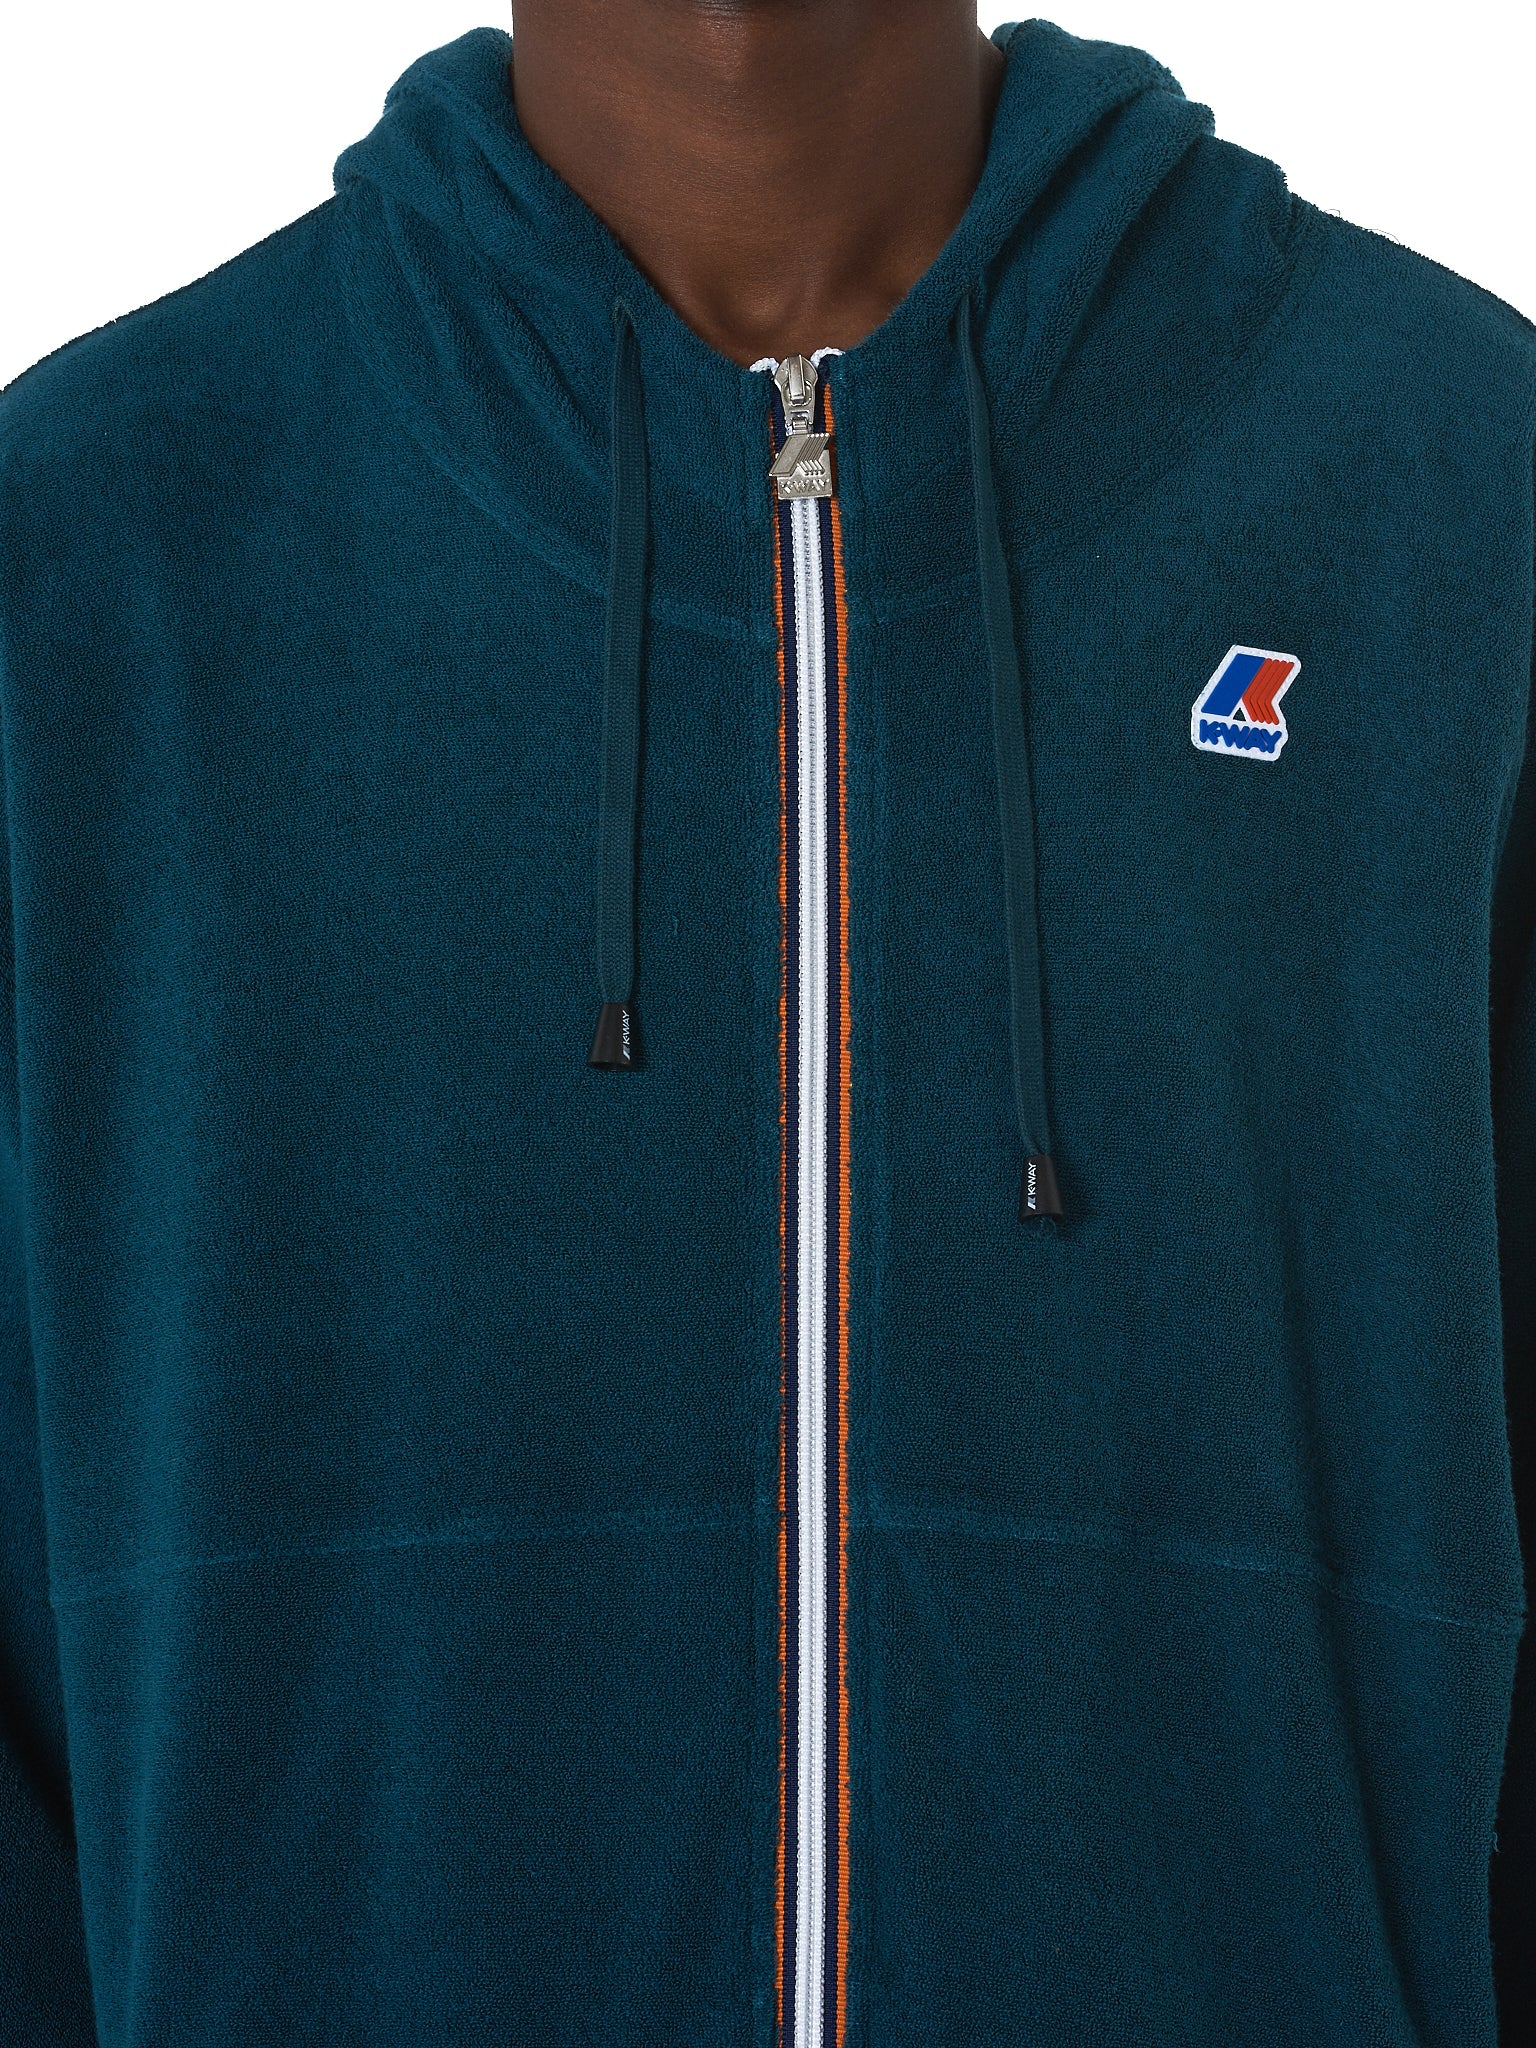 Faith Connexion x K-WAY Pullover - Hlorenzo Detail 3